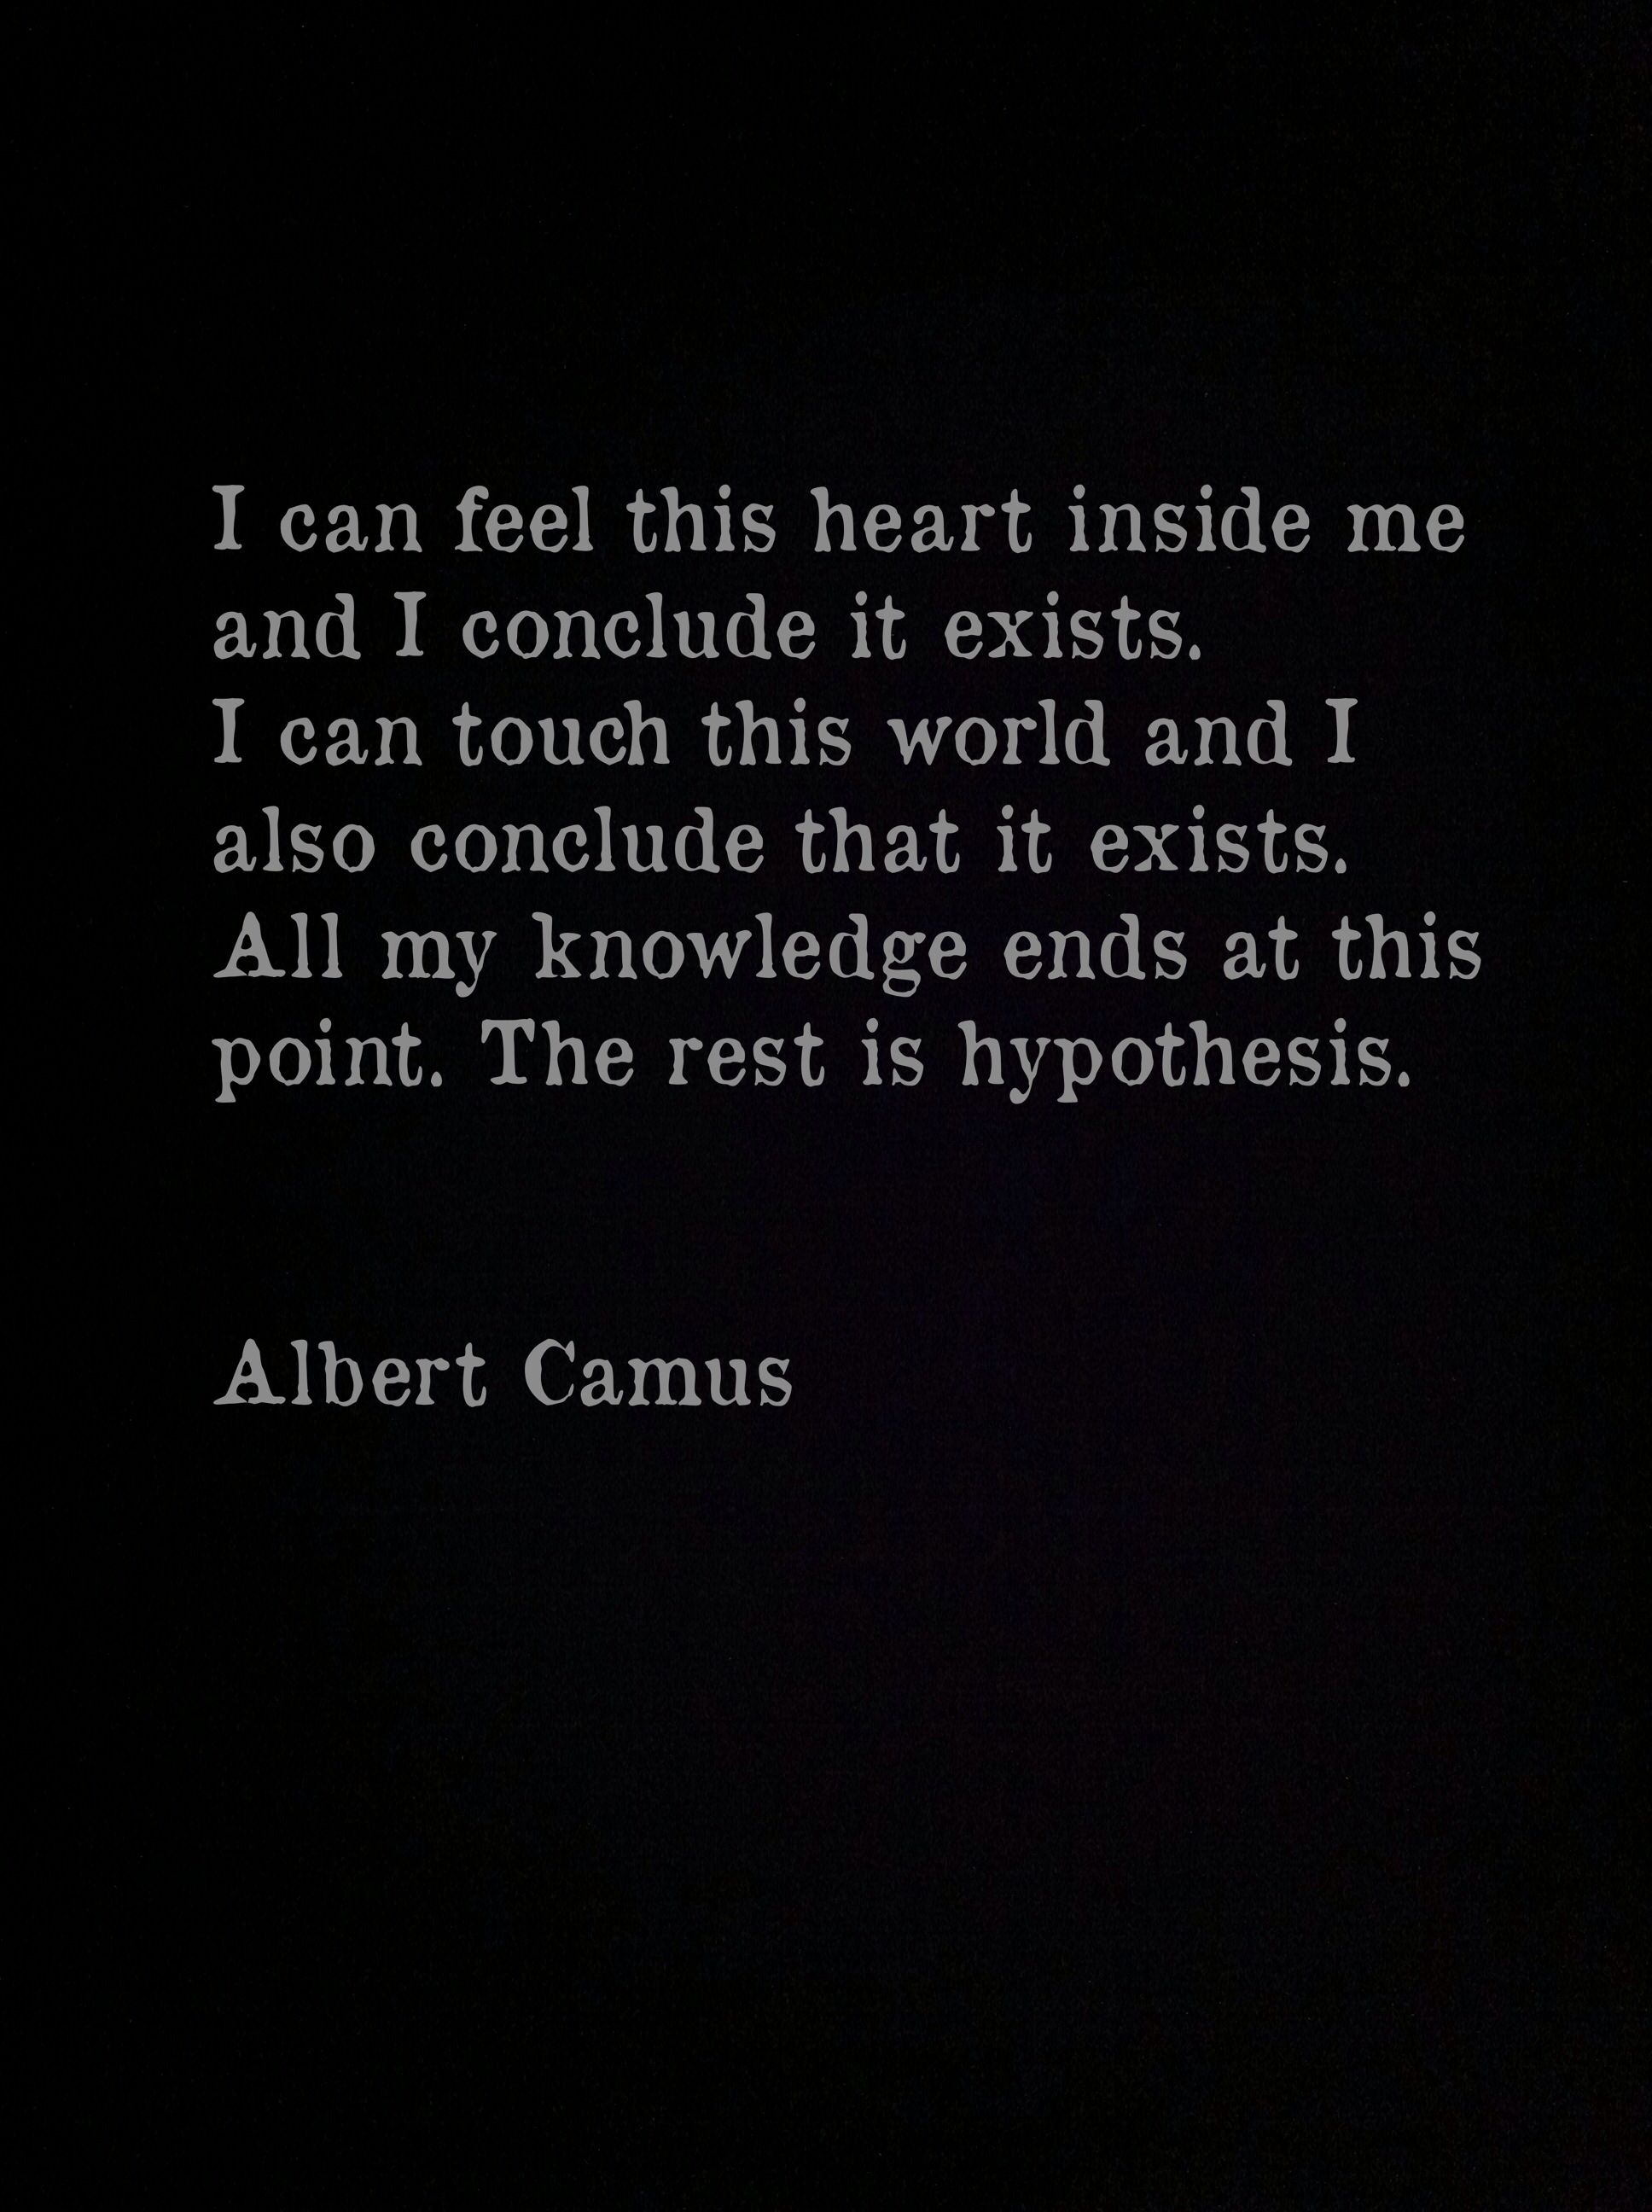 Albert Camus The Myth Of Sisyphus Love Thy Neighbor  Everything  Albert Camus The Myth Of Sisyphus Love Thy Neighbor  Everything Else Is  Commentary